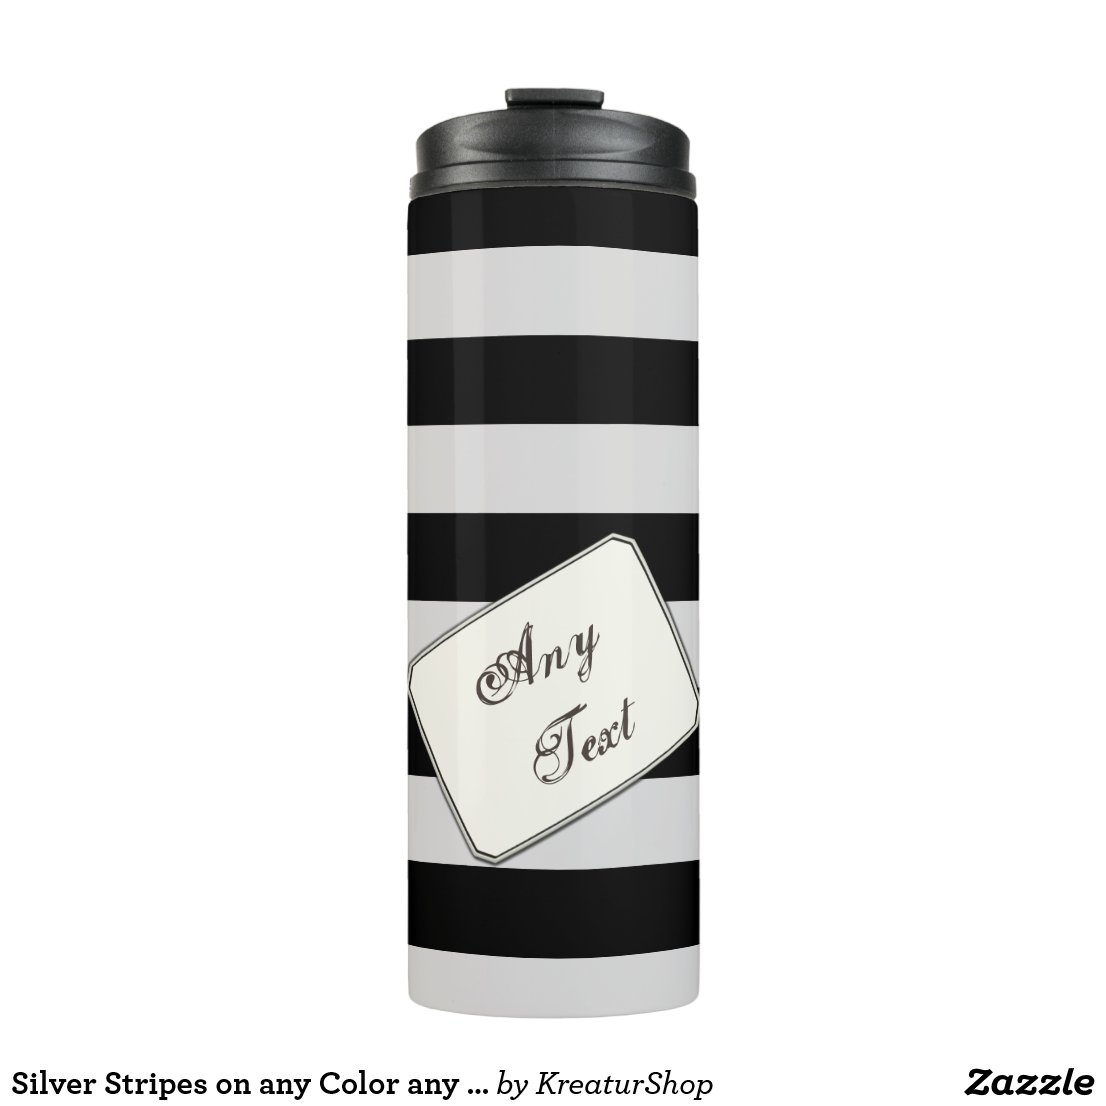 Silver Stripes on any Color any Text